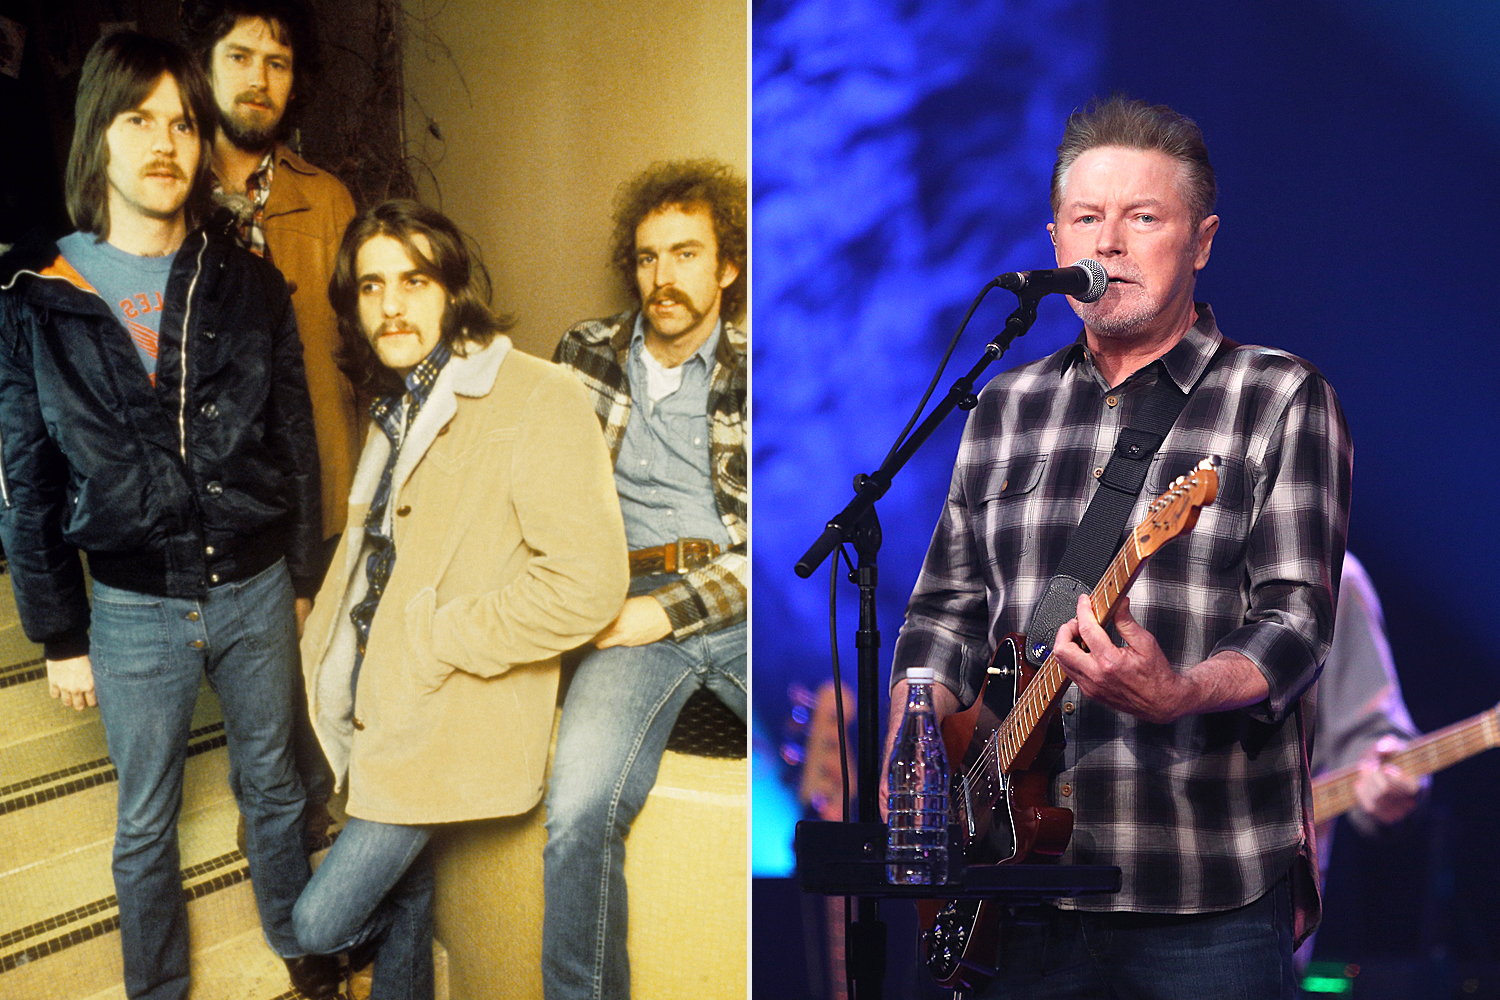 The Eagles; Don Henley